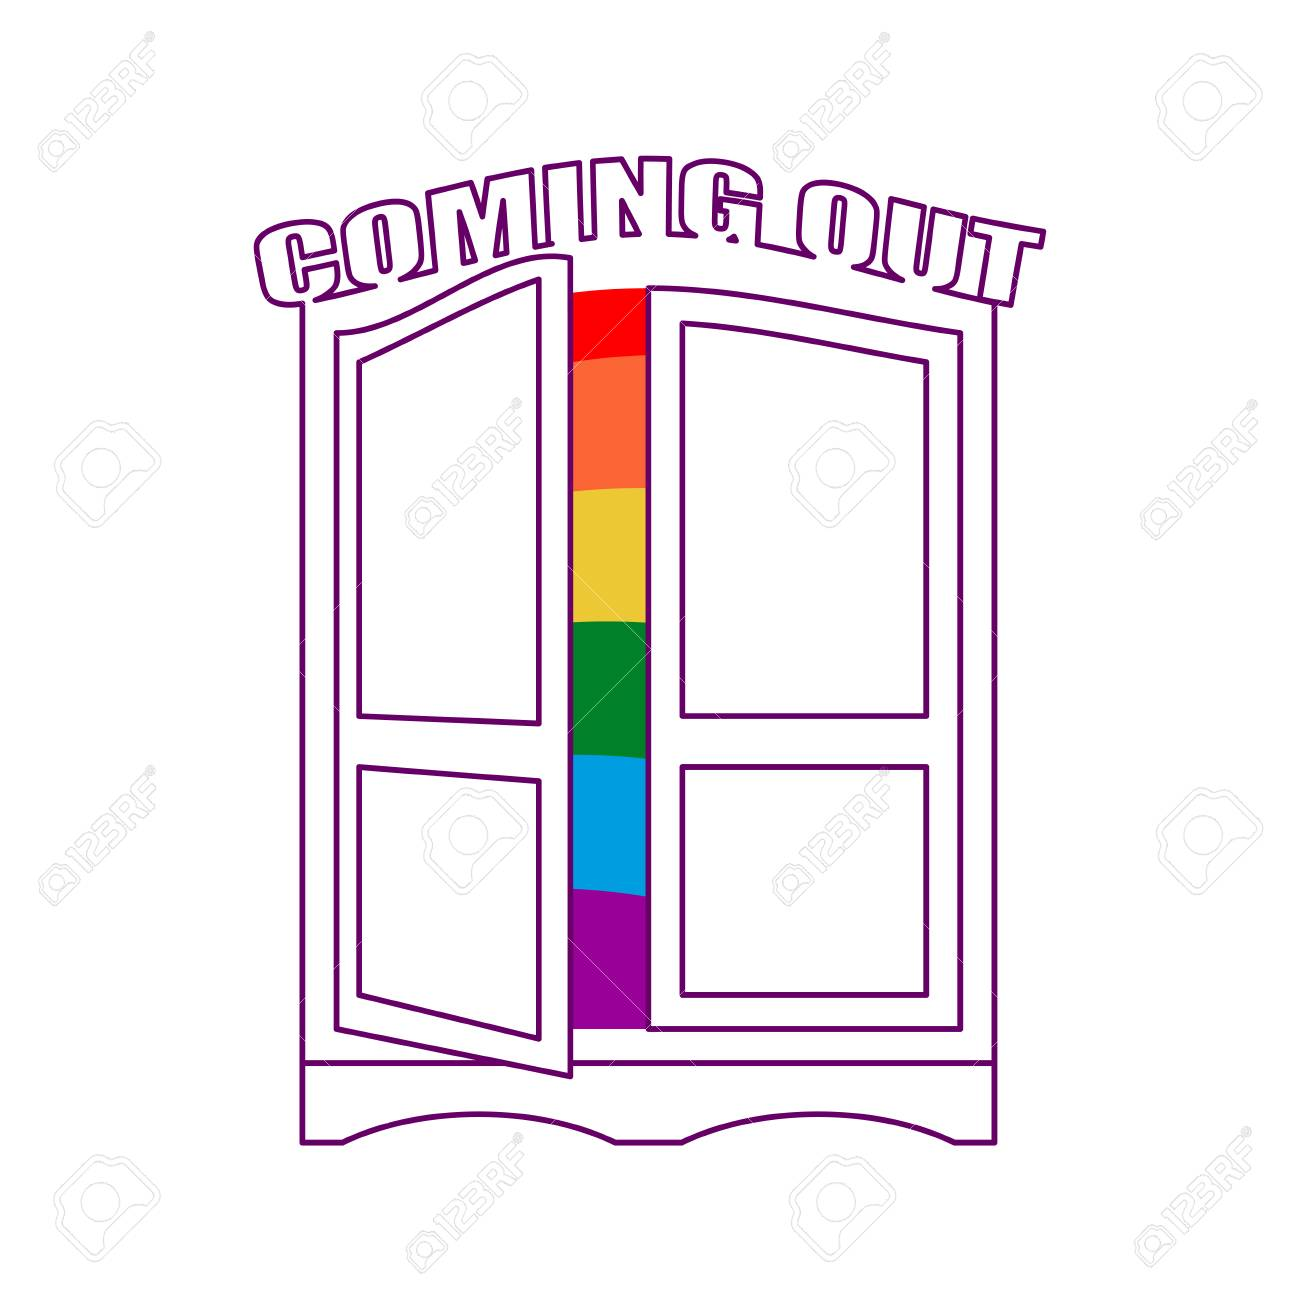 Coming out Wardrobe LGBT symbol. Open closet door. Get out of wardrobe gay.